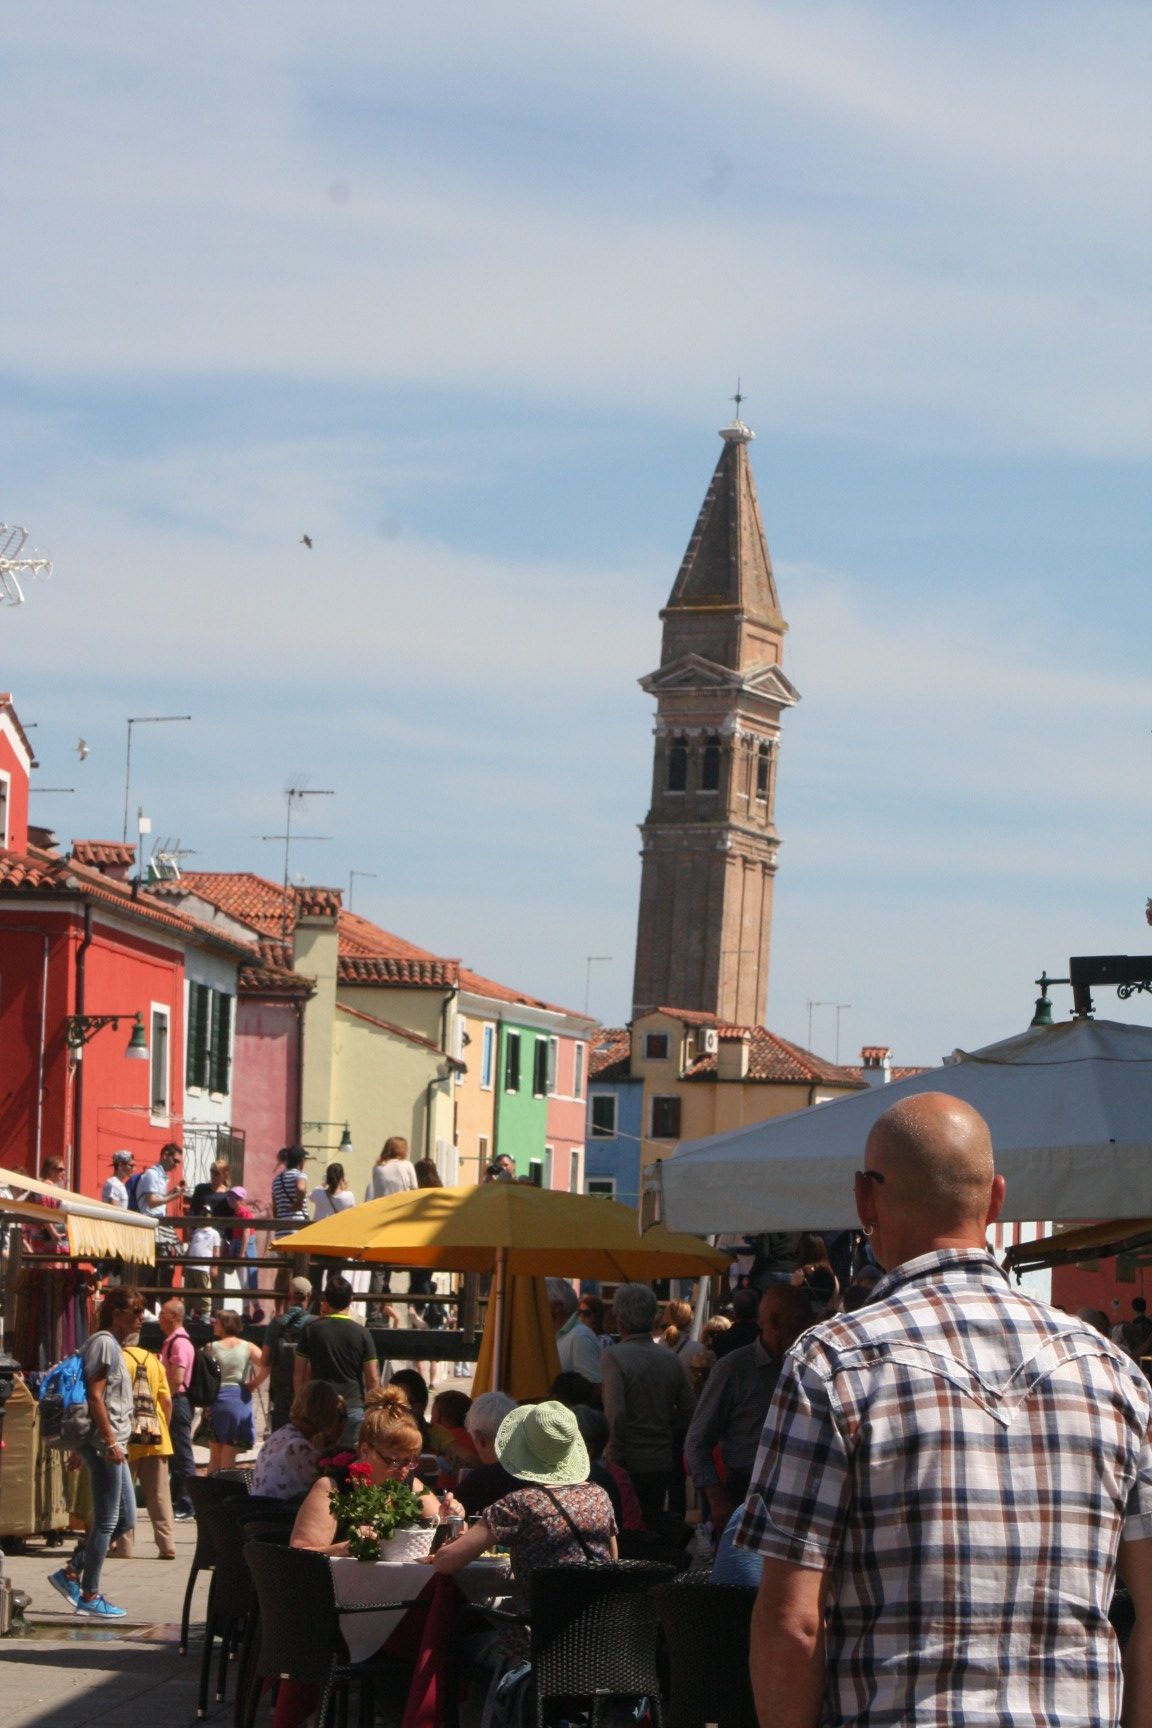 Burano, the leaning tower